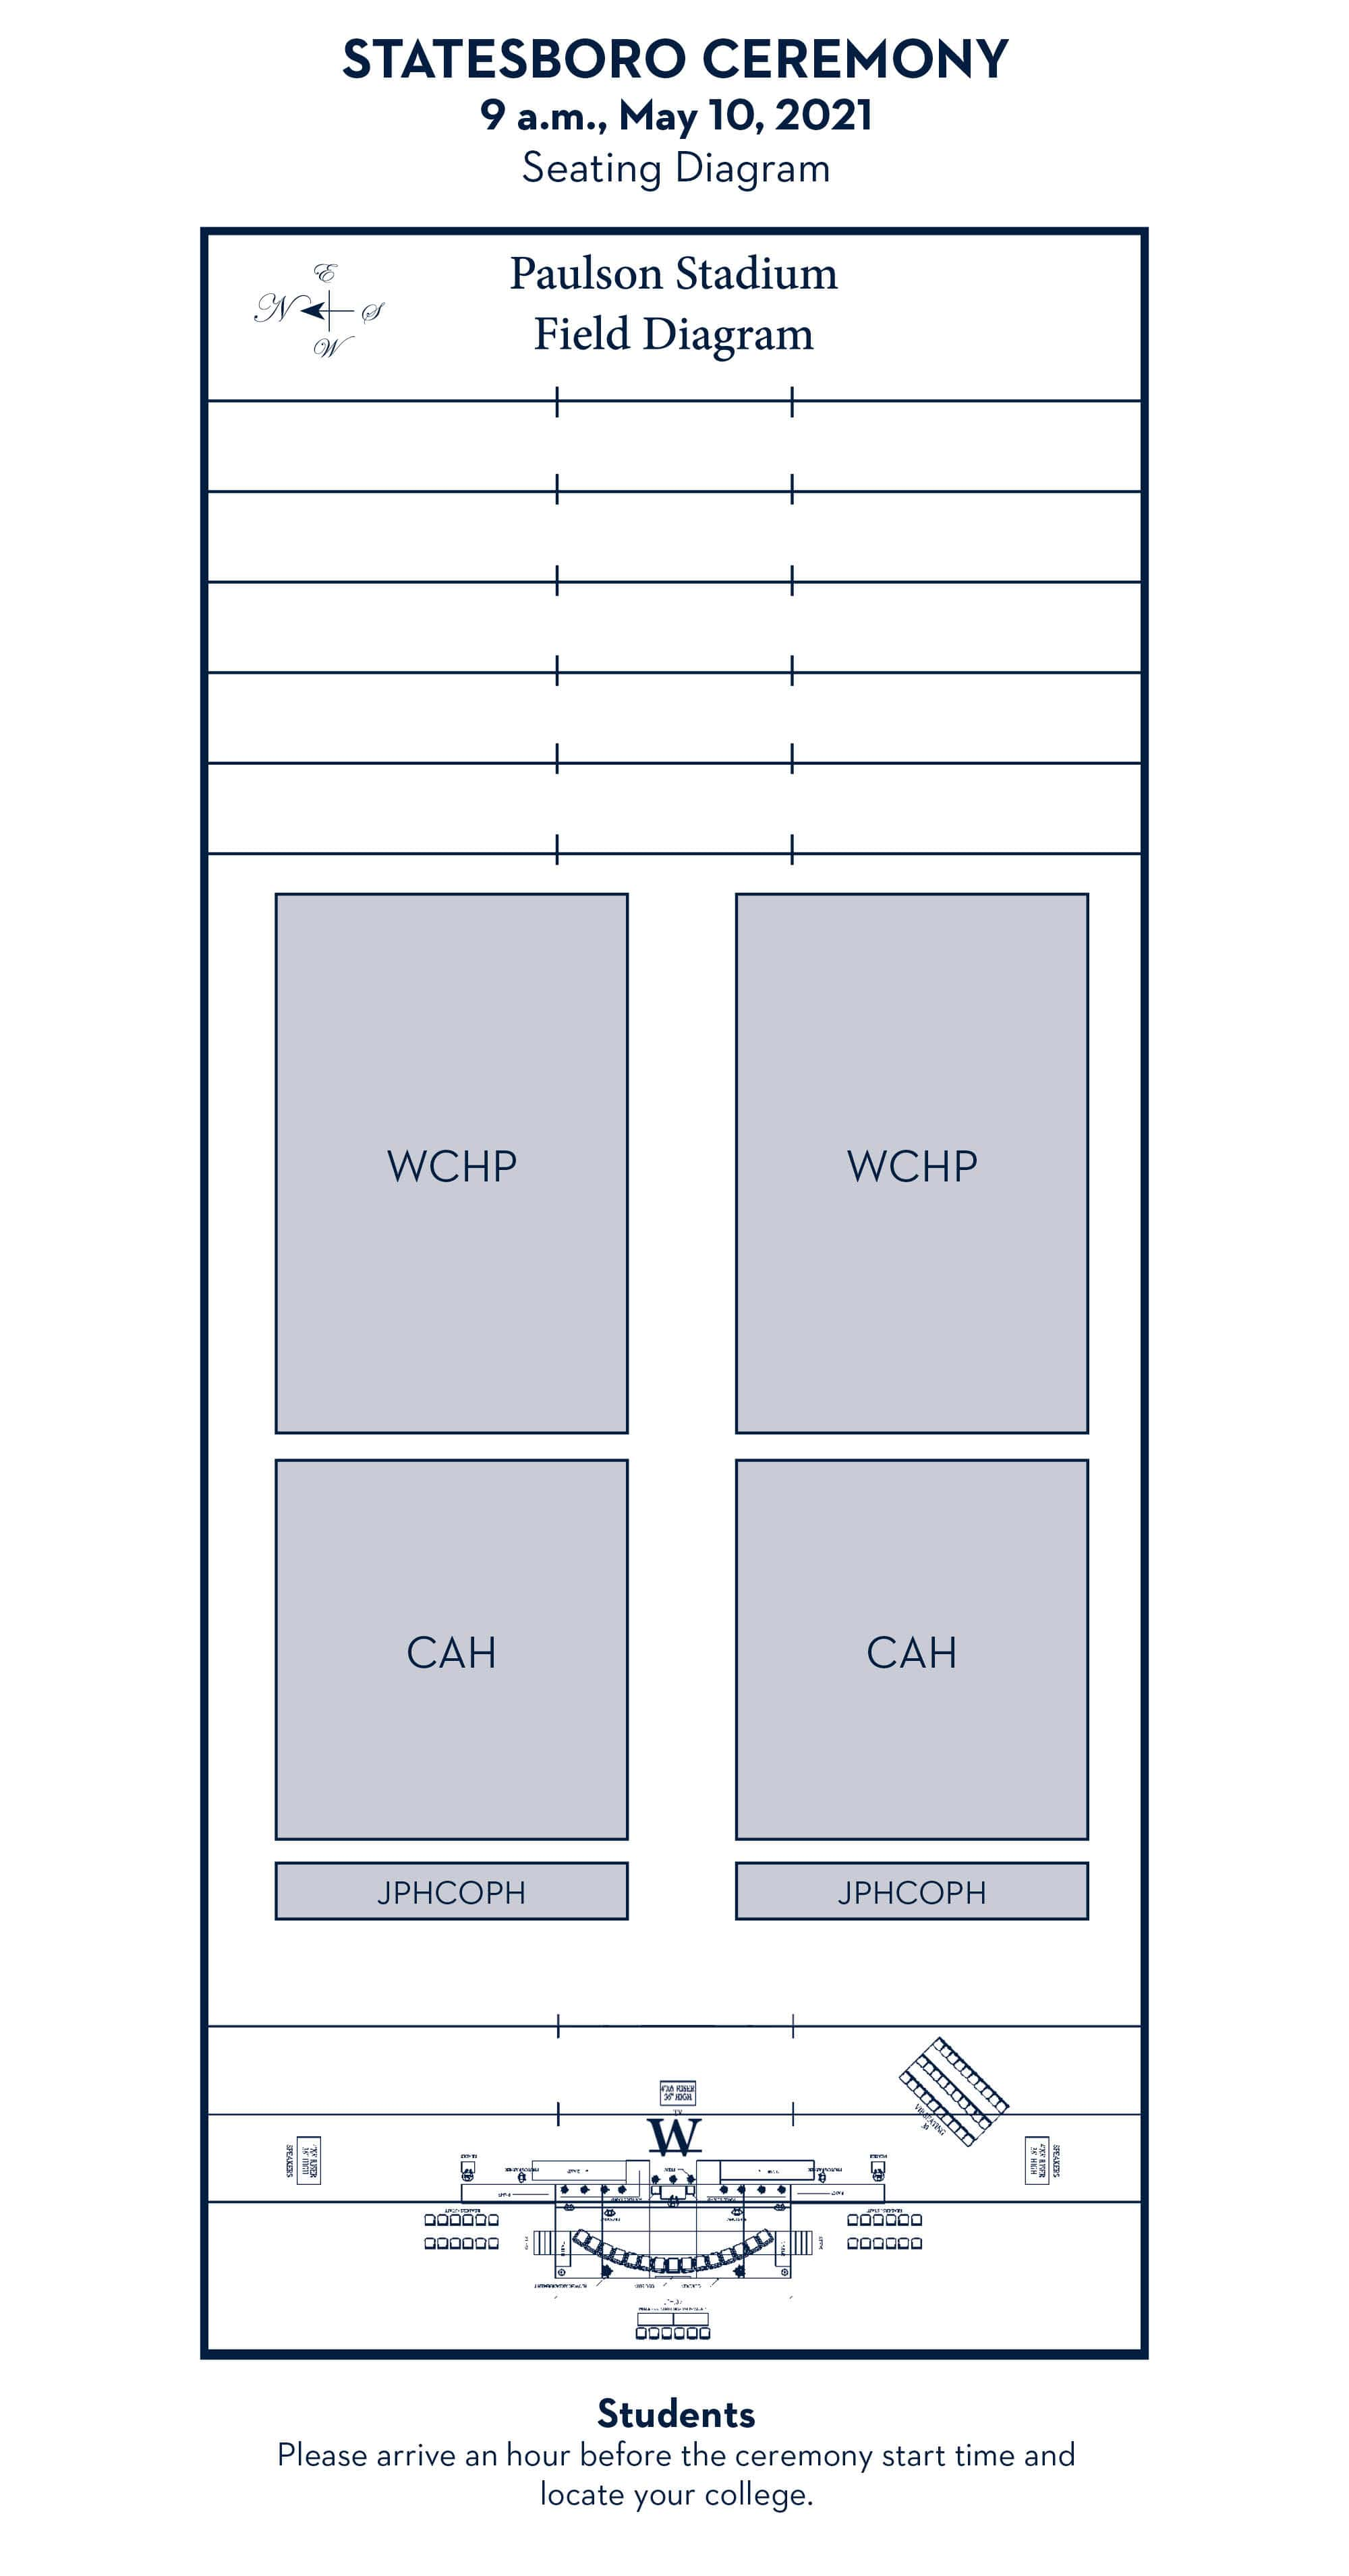 paulson stadium field diagram showing WCHP in the back, CAH in the middle, and JPHCOPH in the front